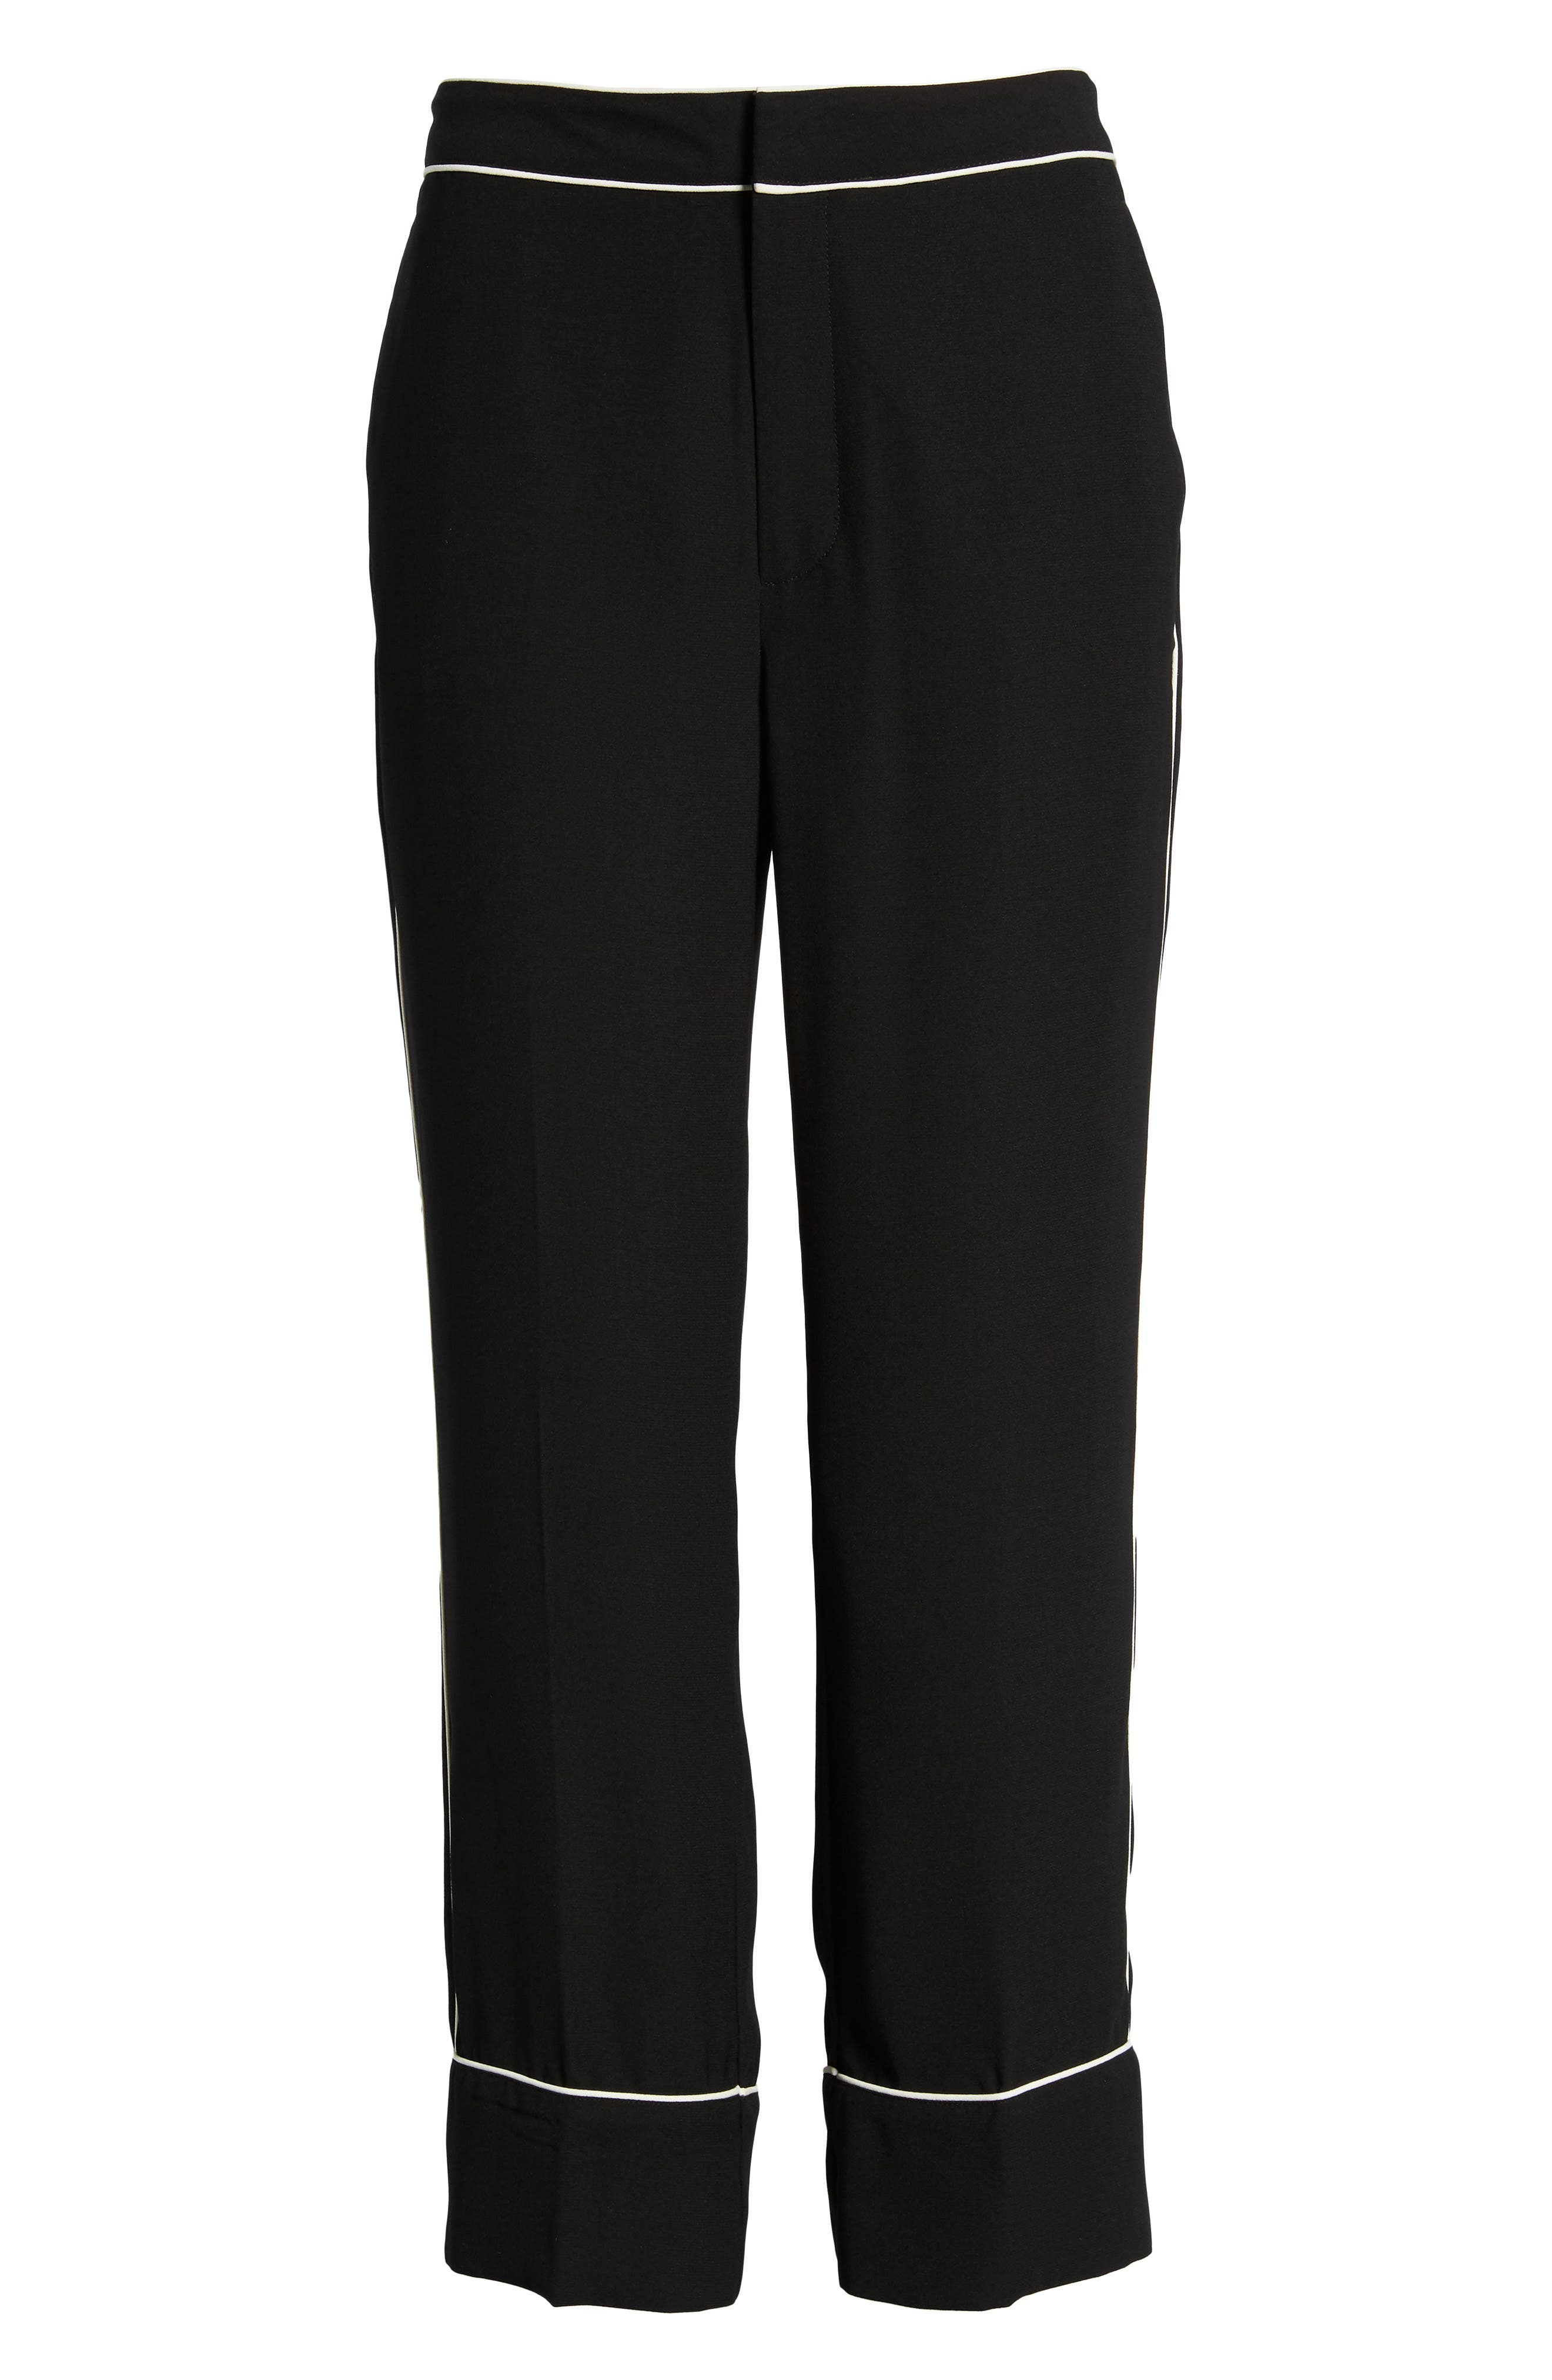 Ankle Pants,                             Alternate thumbnail 7, color,                             Black/ Bright White Piping